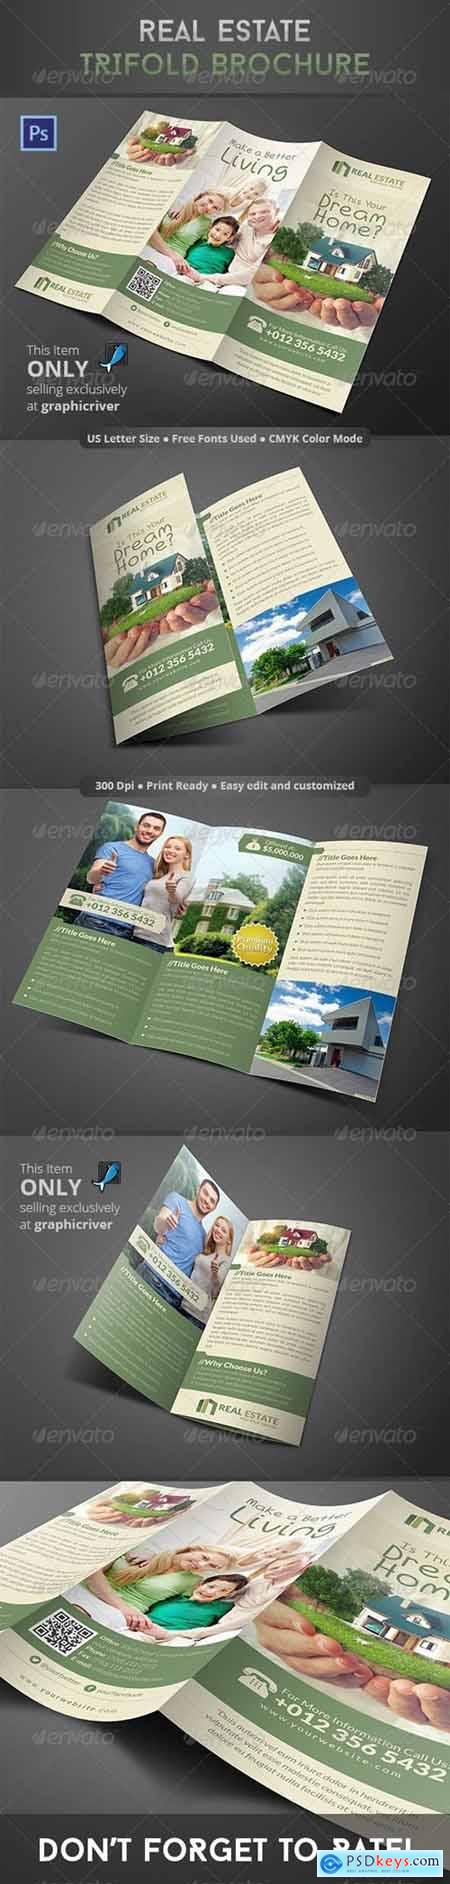 Real Estate Trifold Brochure 8606749